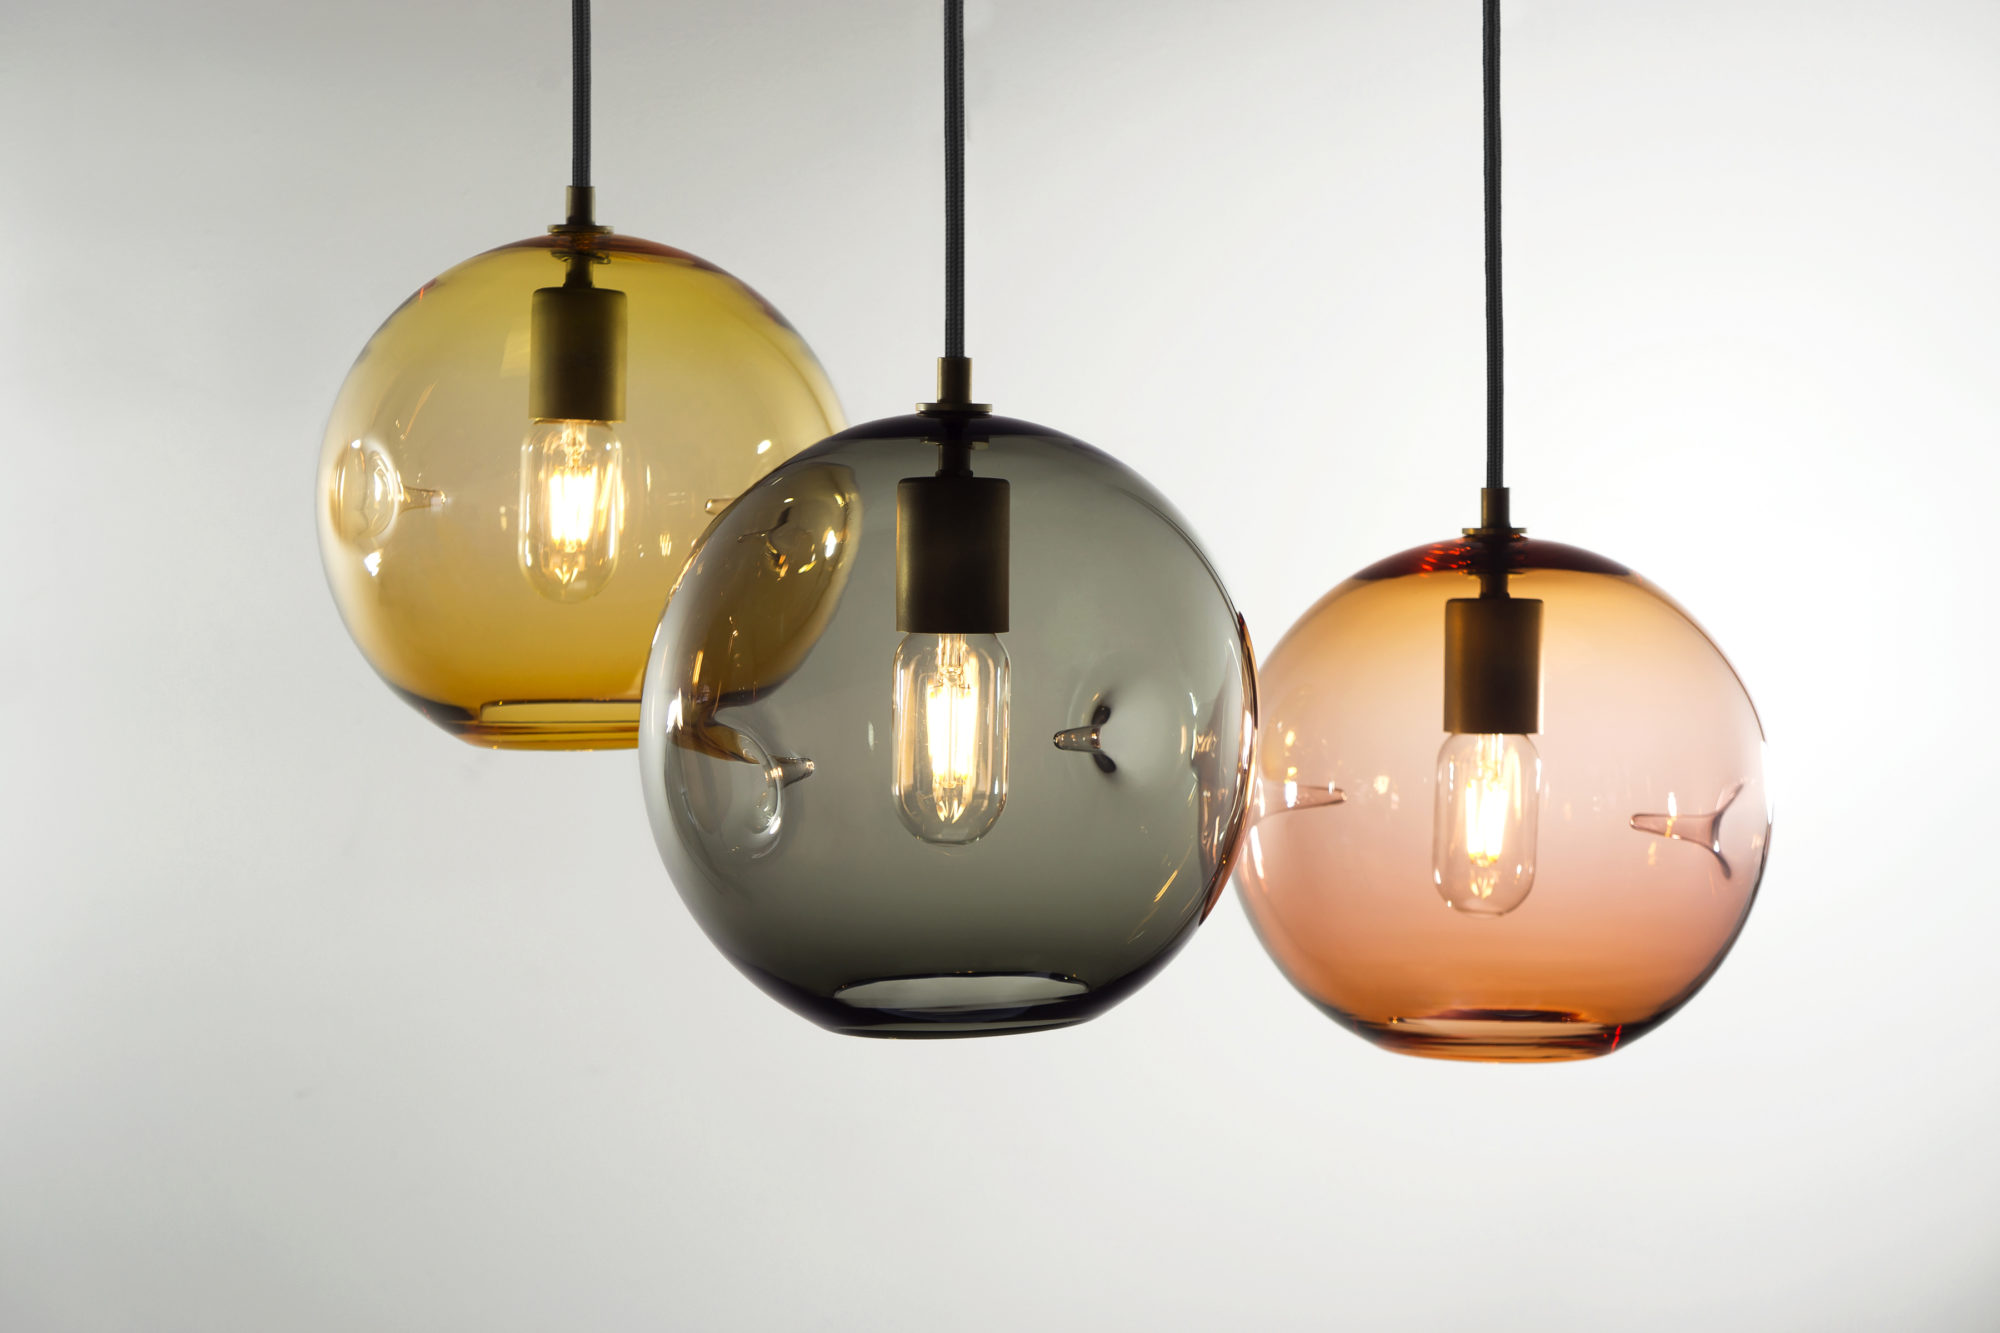 The six jewel inspired color options in this versatile fixture accentuate its signature feature each one is poked by hand on either side giving the glass